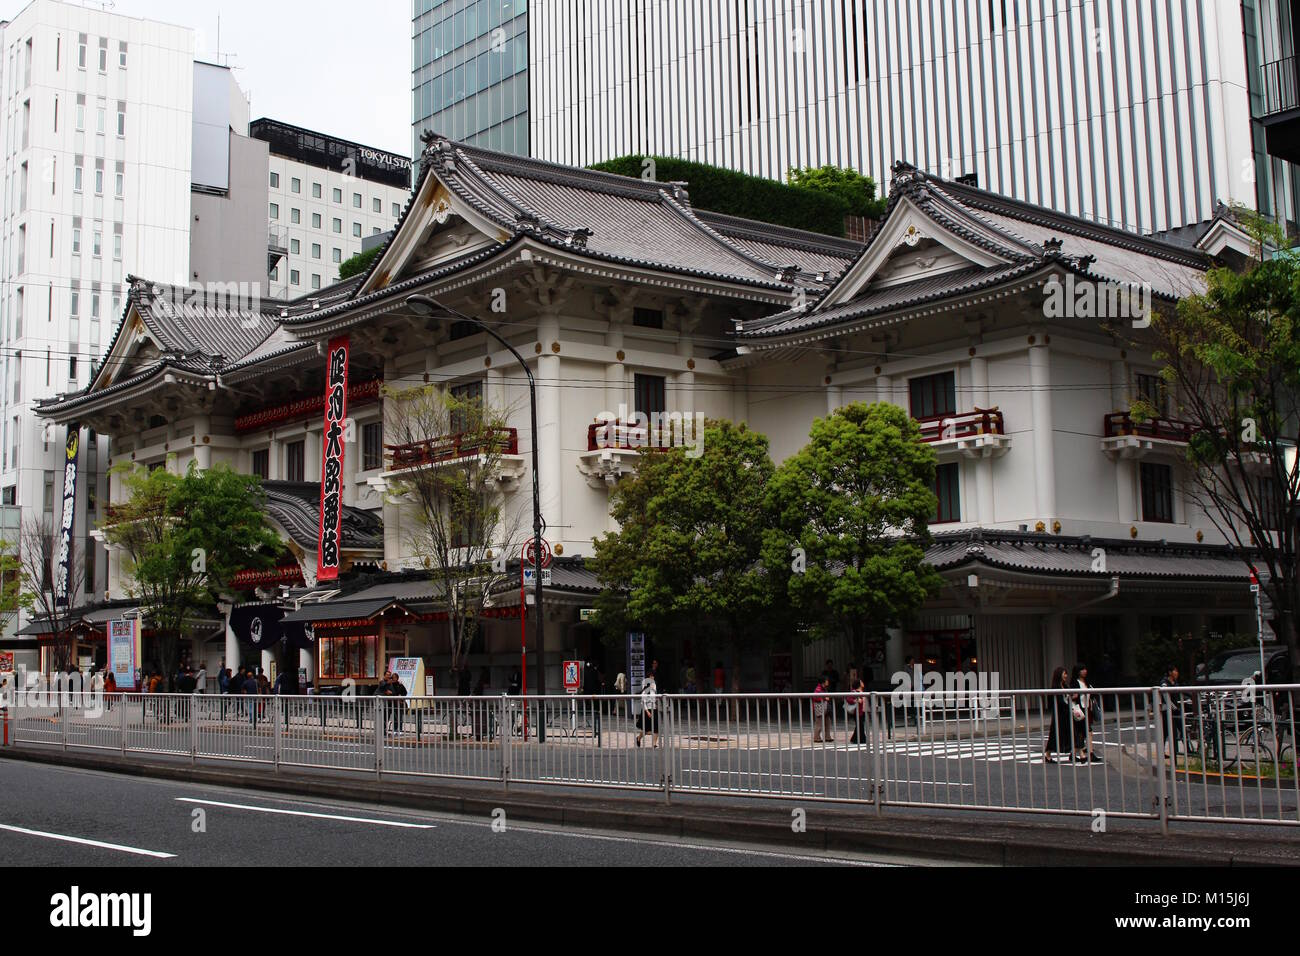 View of the Kabuki-Za, the main Kabuki theater in Tokyo and is located in Ginza. Photo taken April 2017. - Stock Image